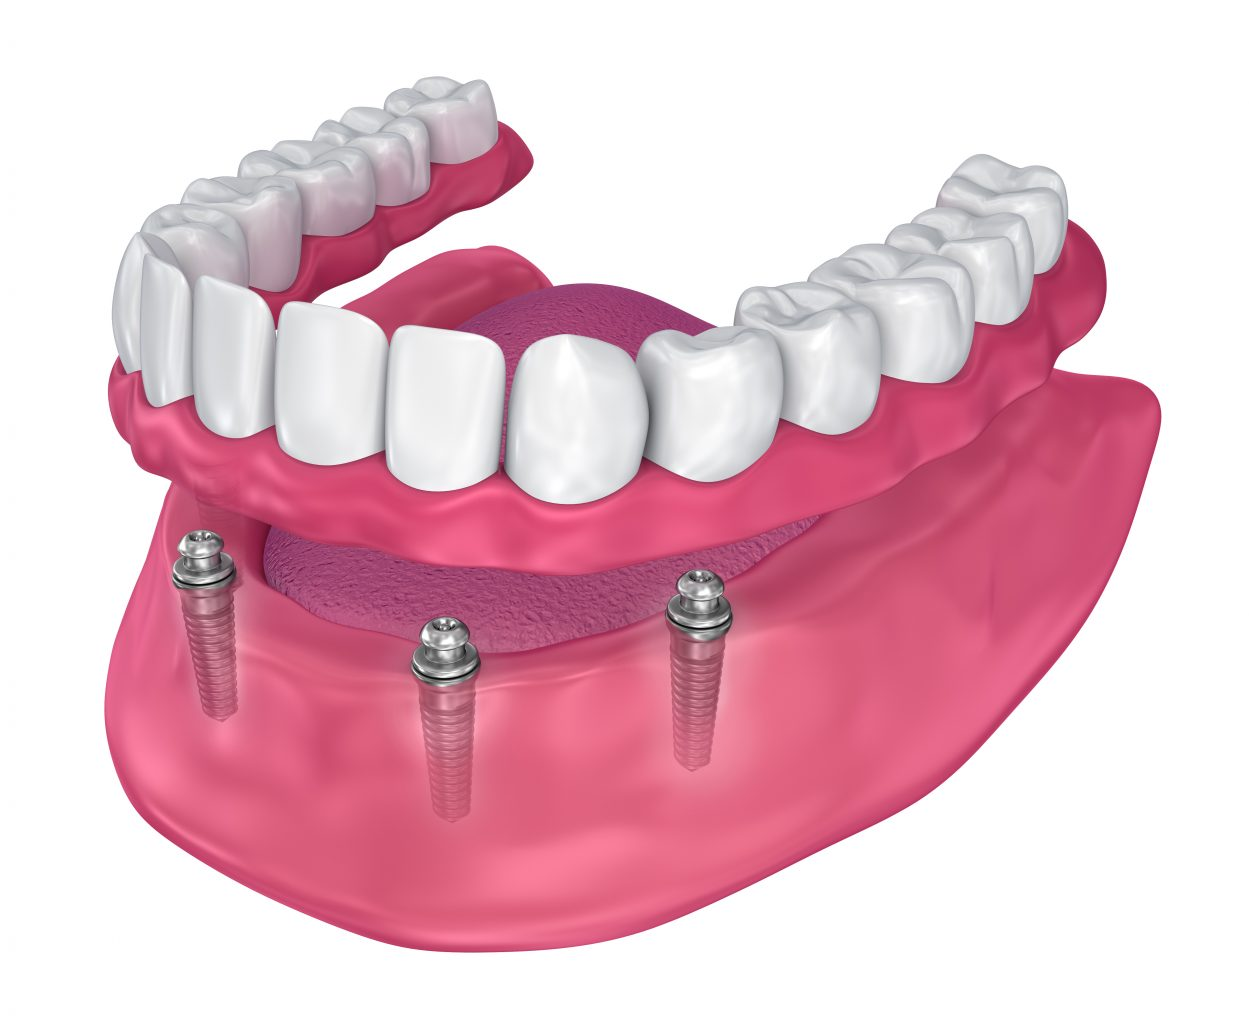 overdenture to be seated on implants ball attachments. 3d illustration